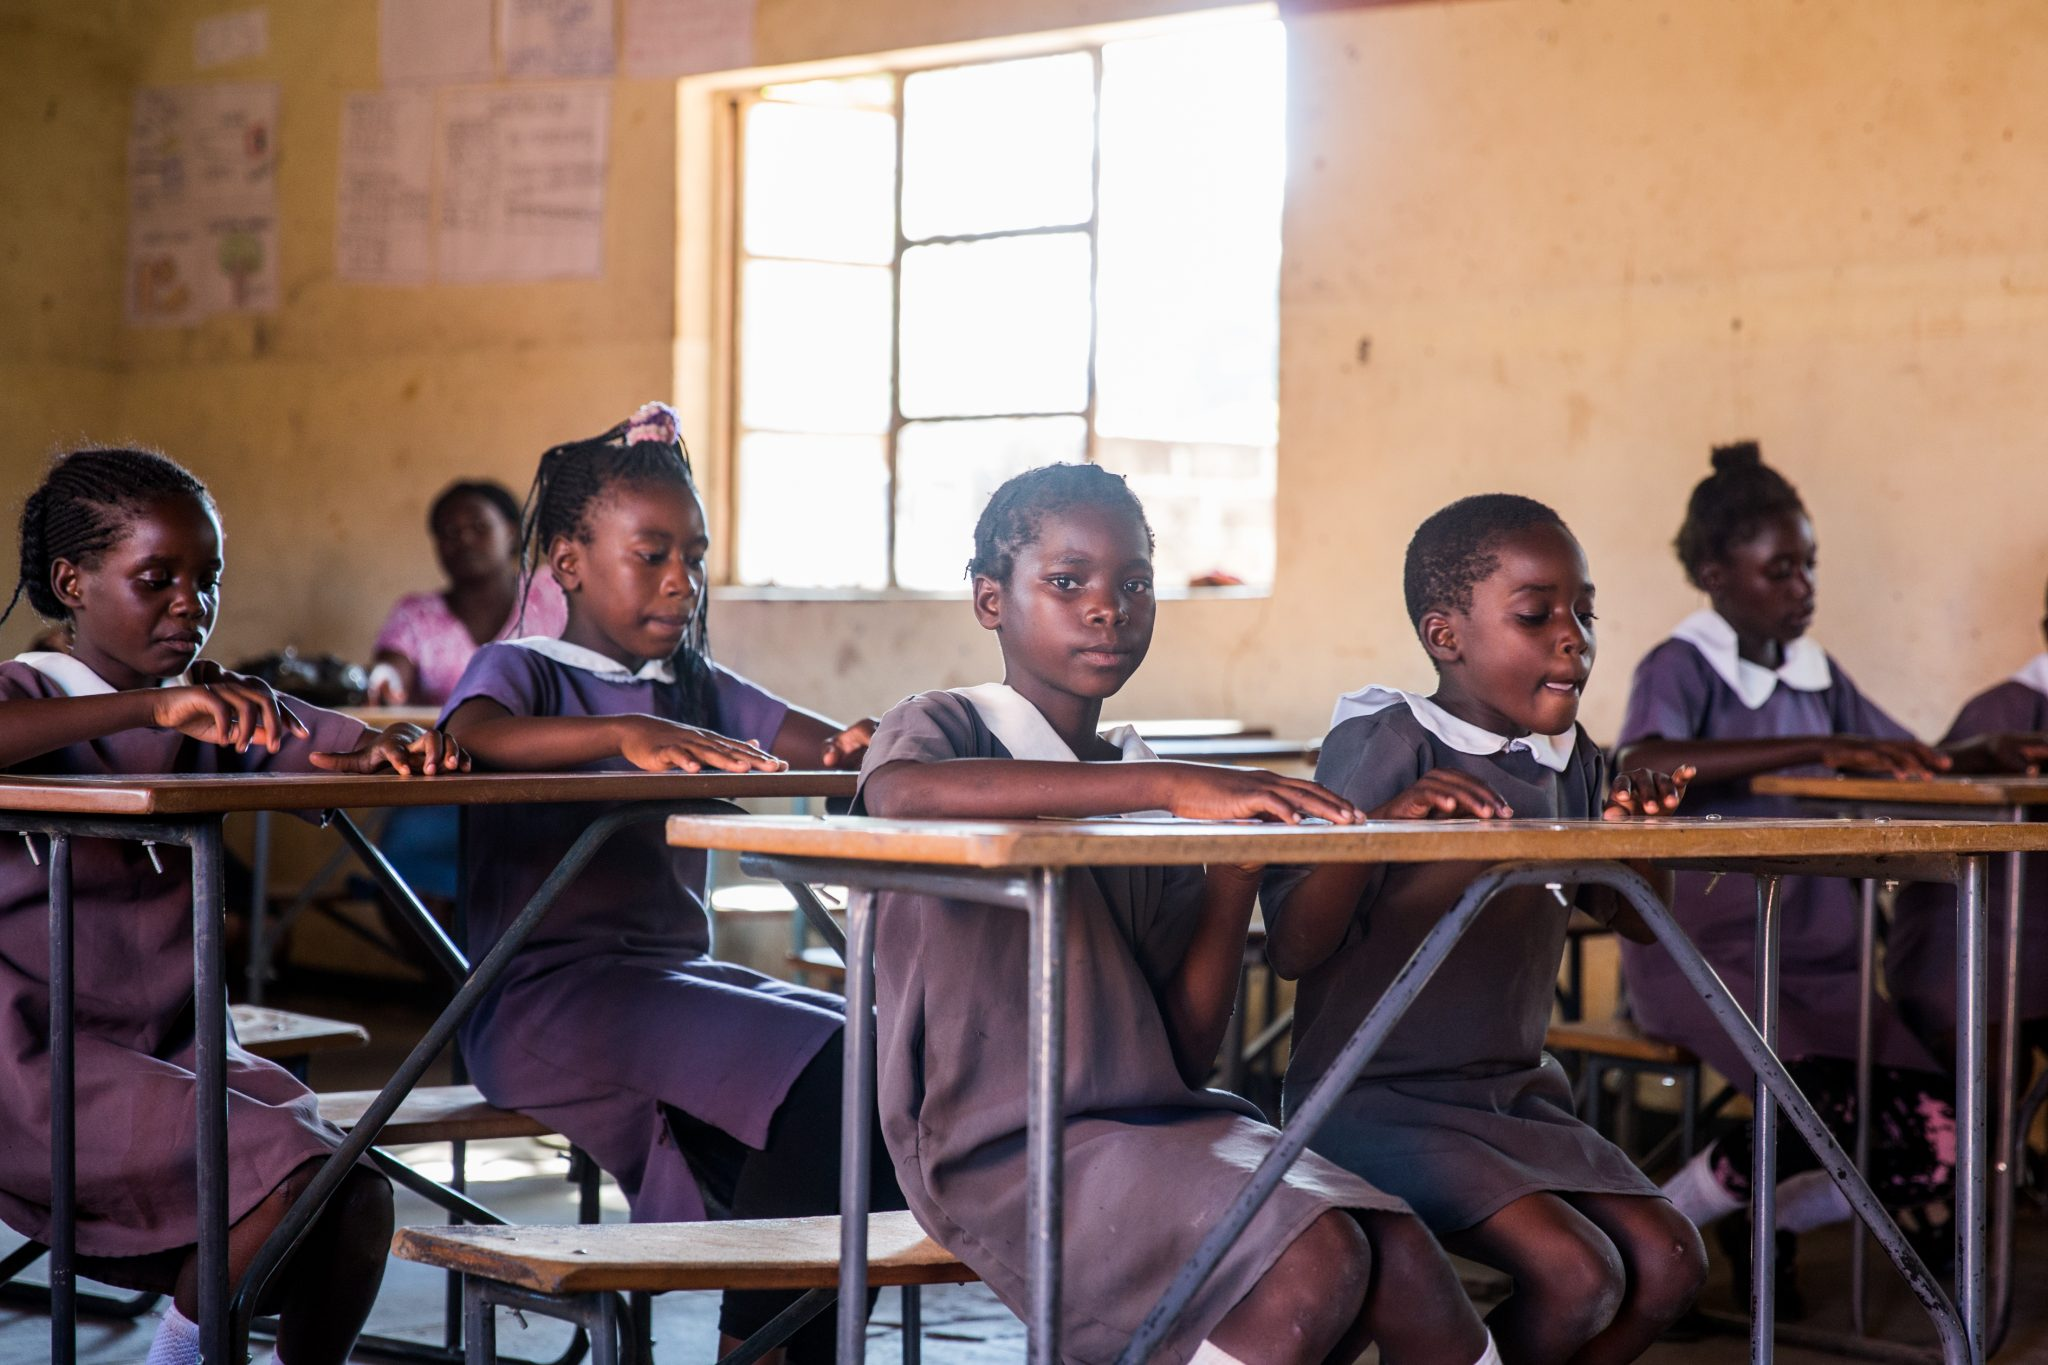 Zambia Girl's in Classroom in School